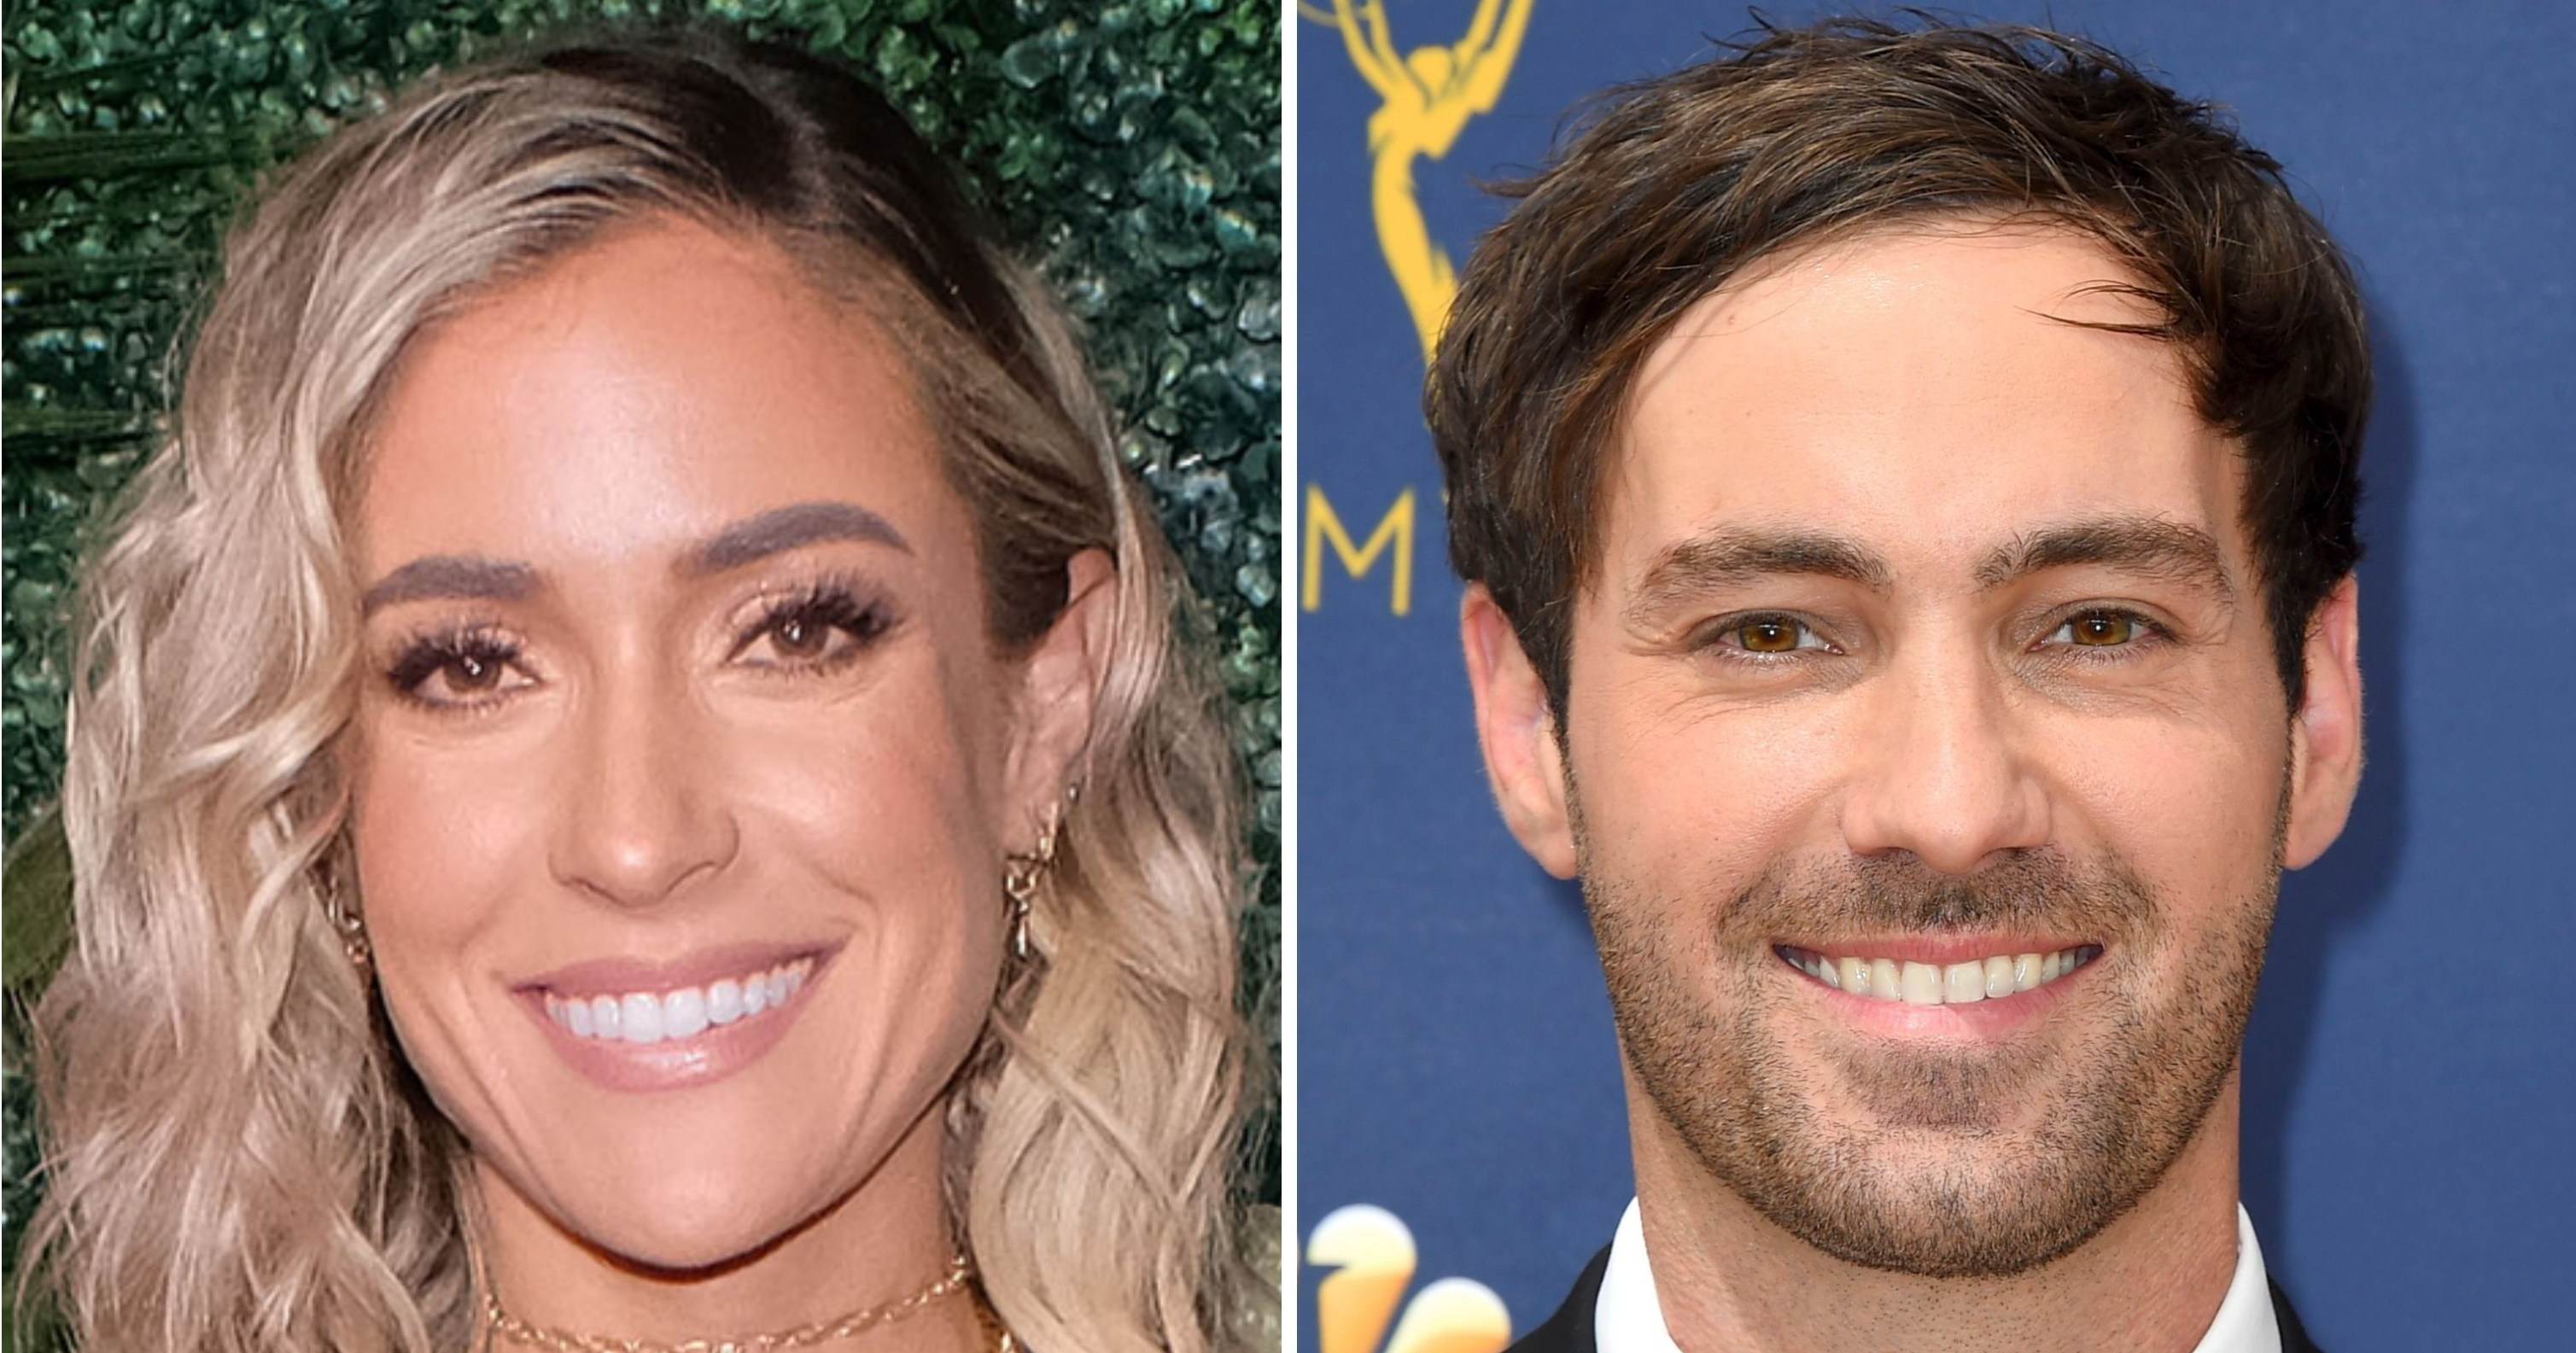 These are 6 Things to Know About the Comedian Kristin Cavallari's New Man Jeff Dye